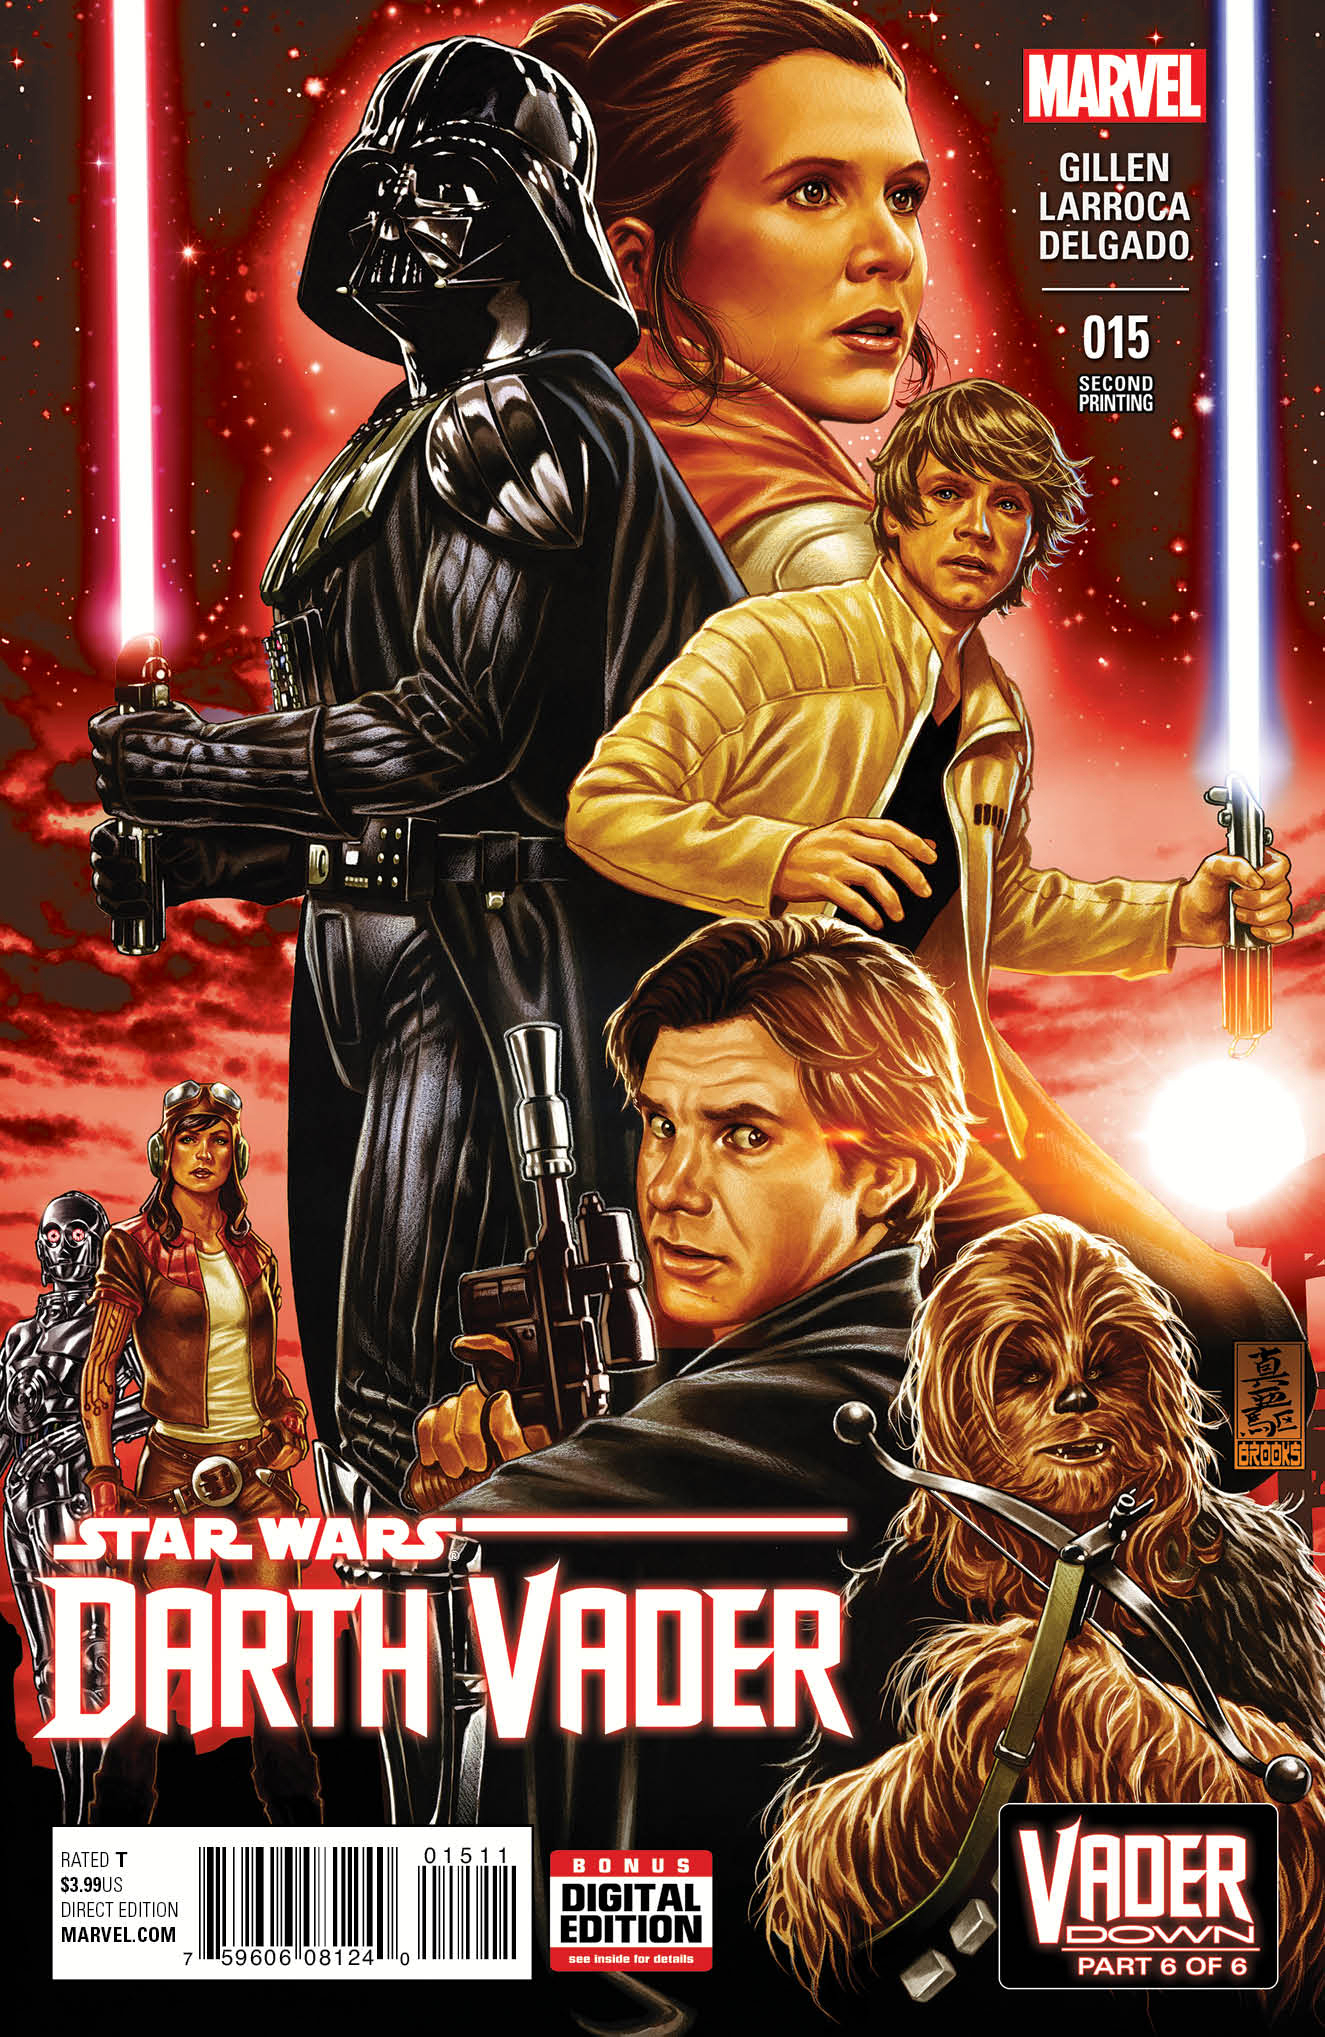 DARTH VADER #15 BROOKS 2ND PTG VAR VDWN